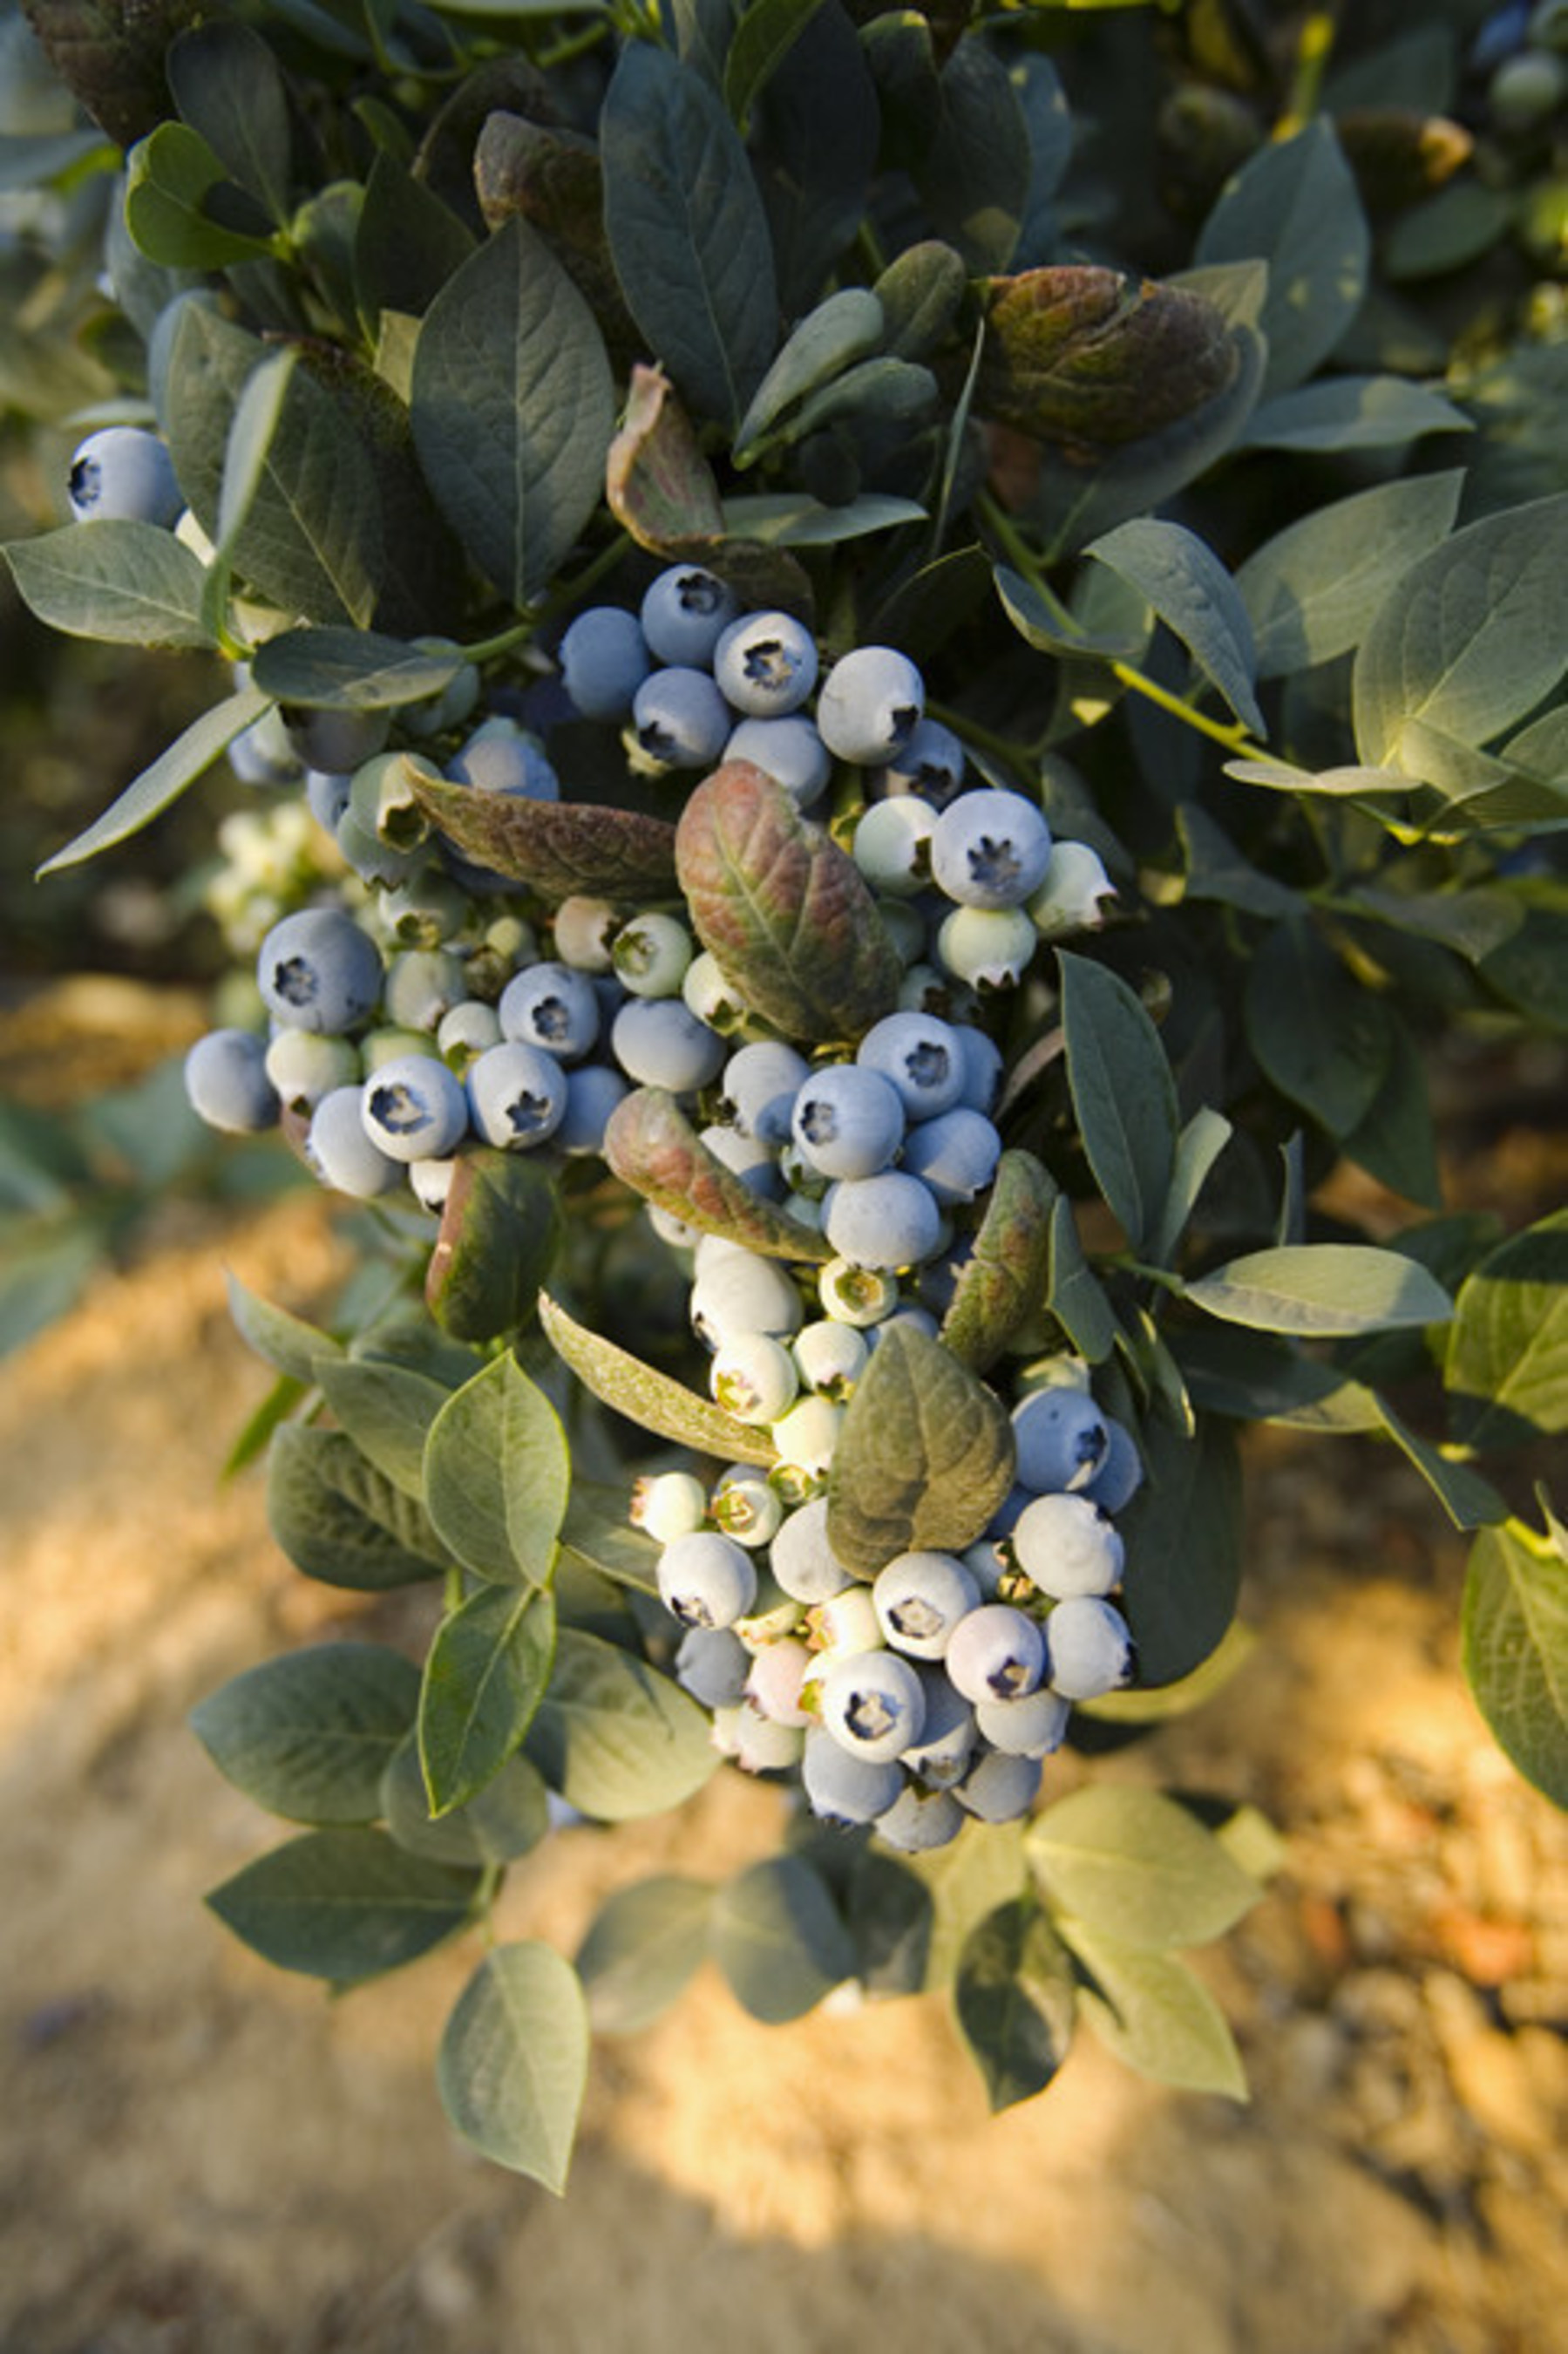 Naturipe® Farms challenges developers to invent the next generation automated blueberry harvesting